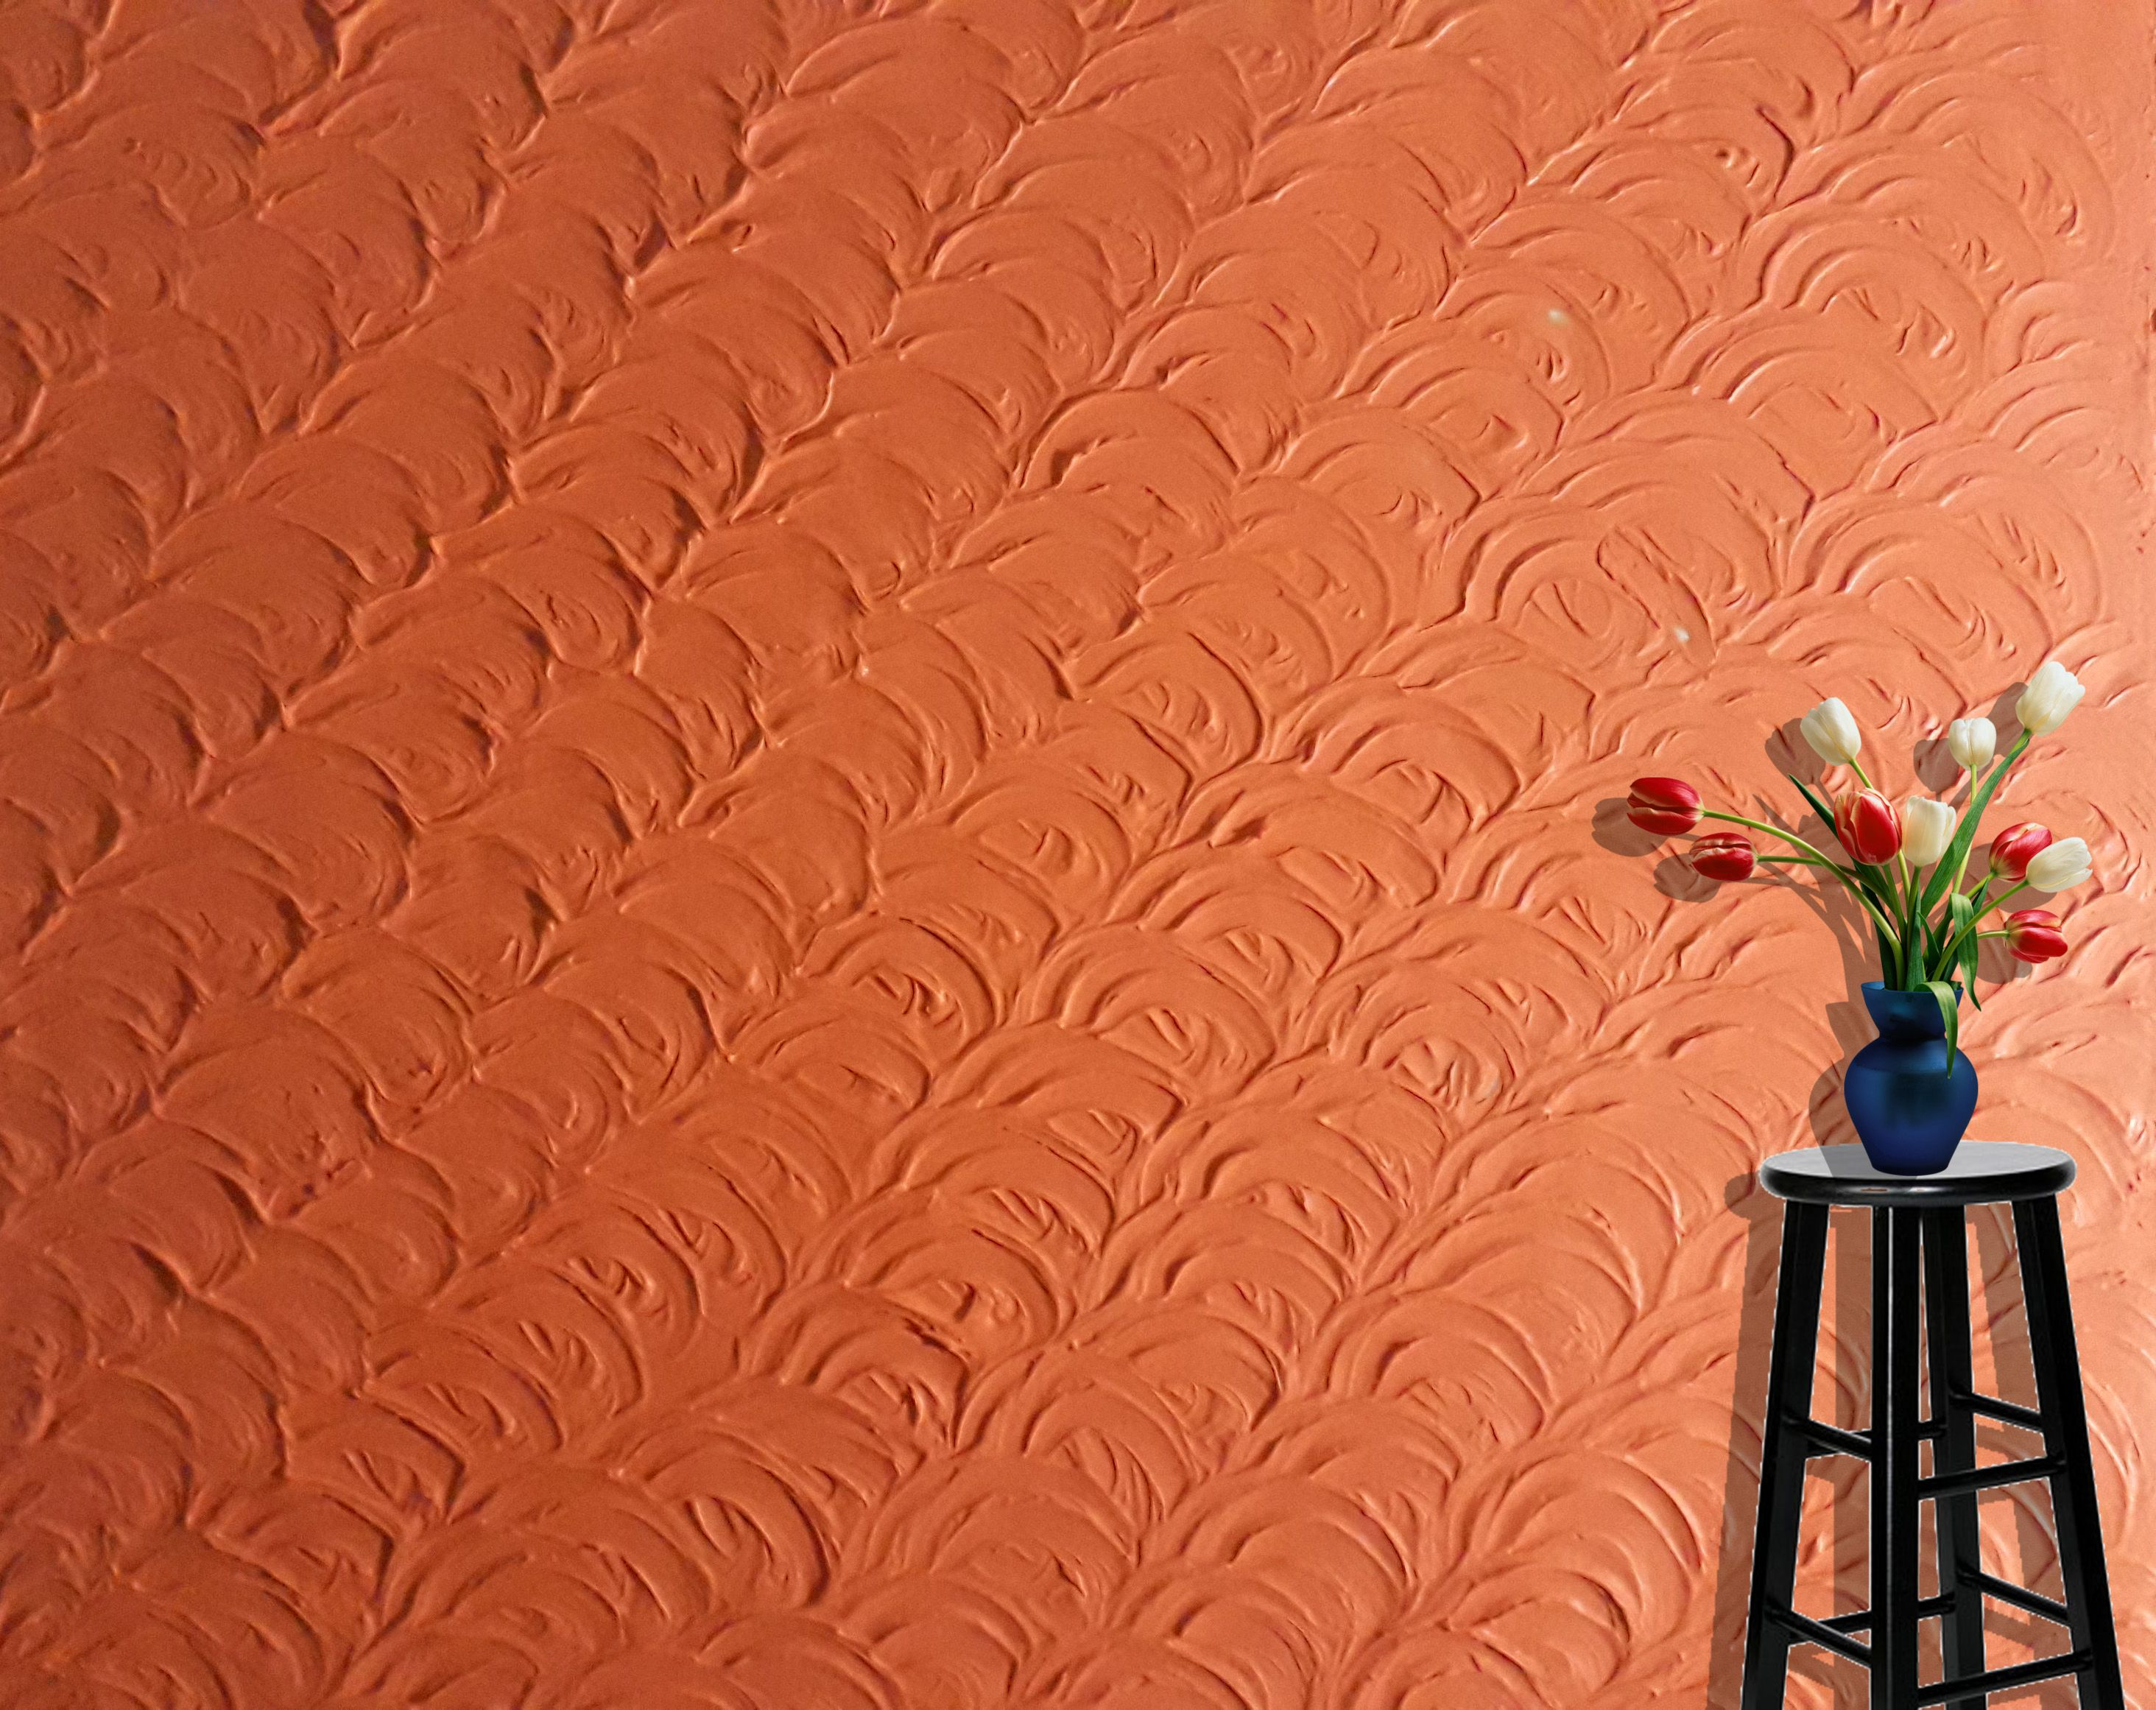 Decorative Texture On Dry Wall Wall Texture Design Wall Painting Techniques Textured Walls